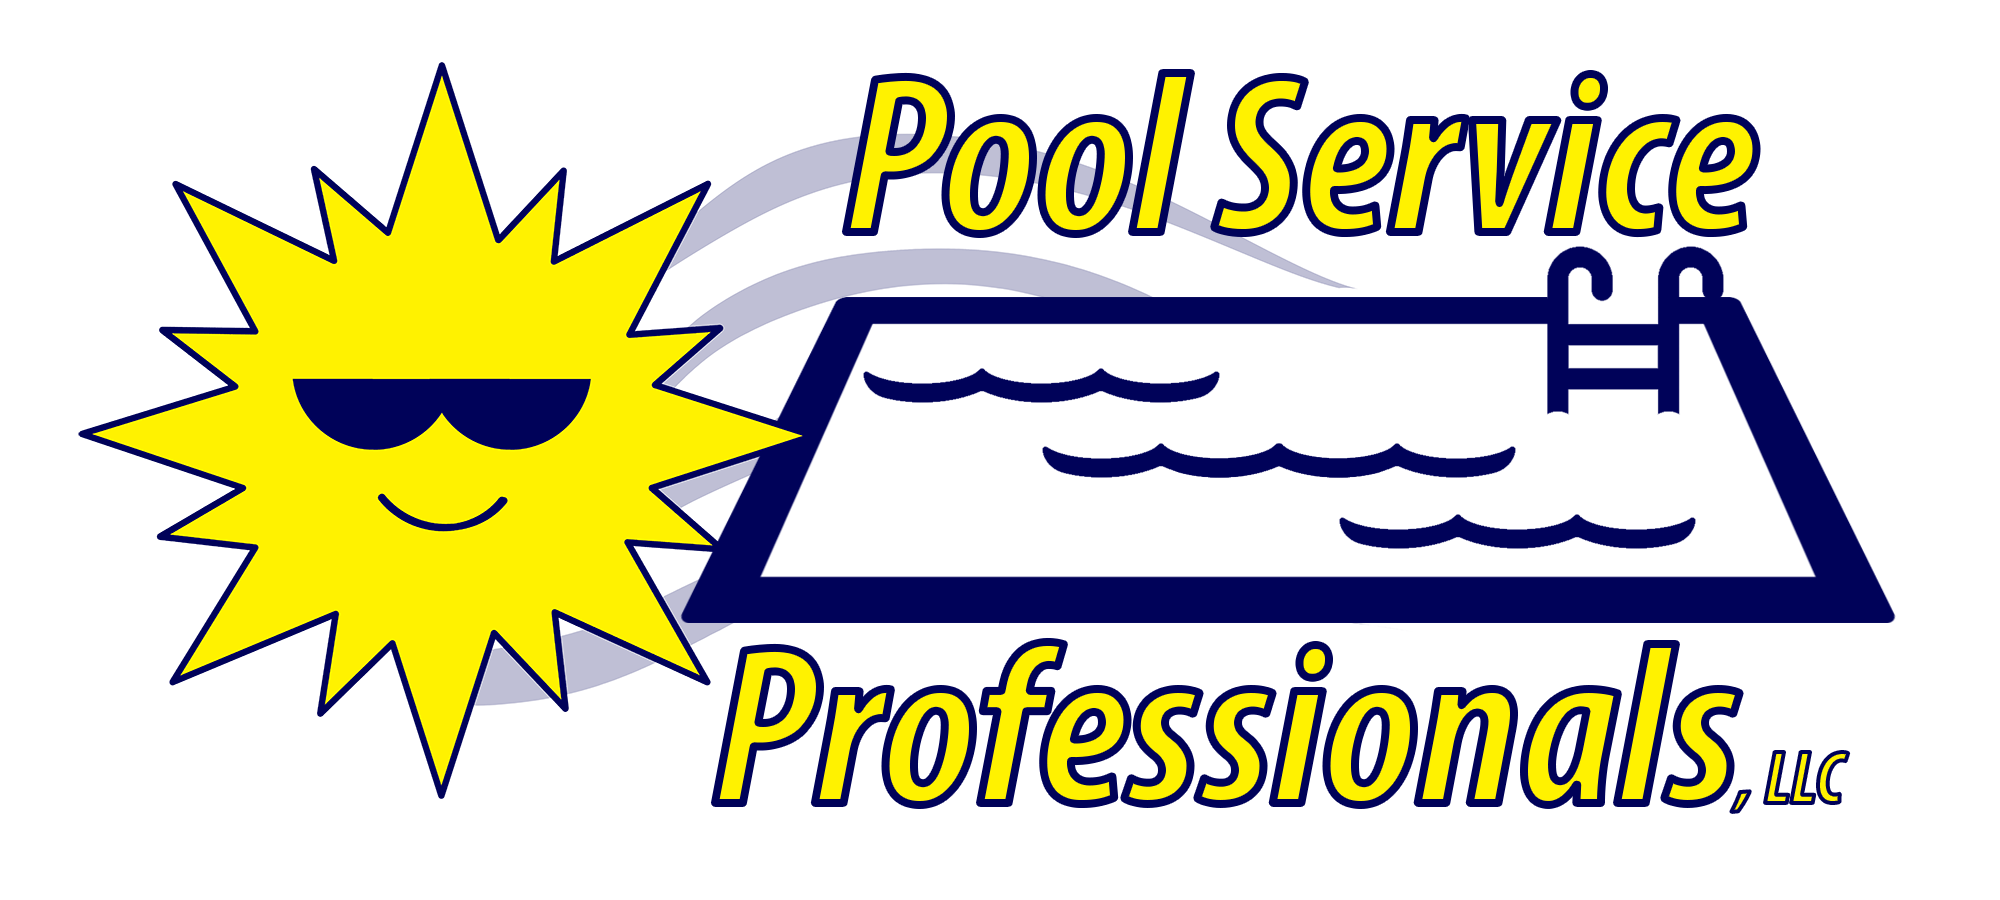 Pool Service Professionals, LLC